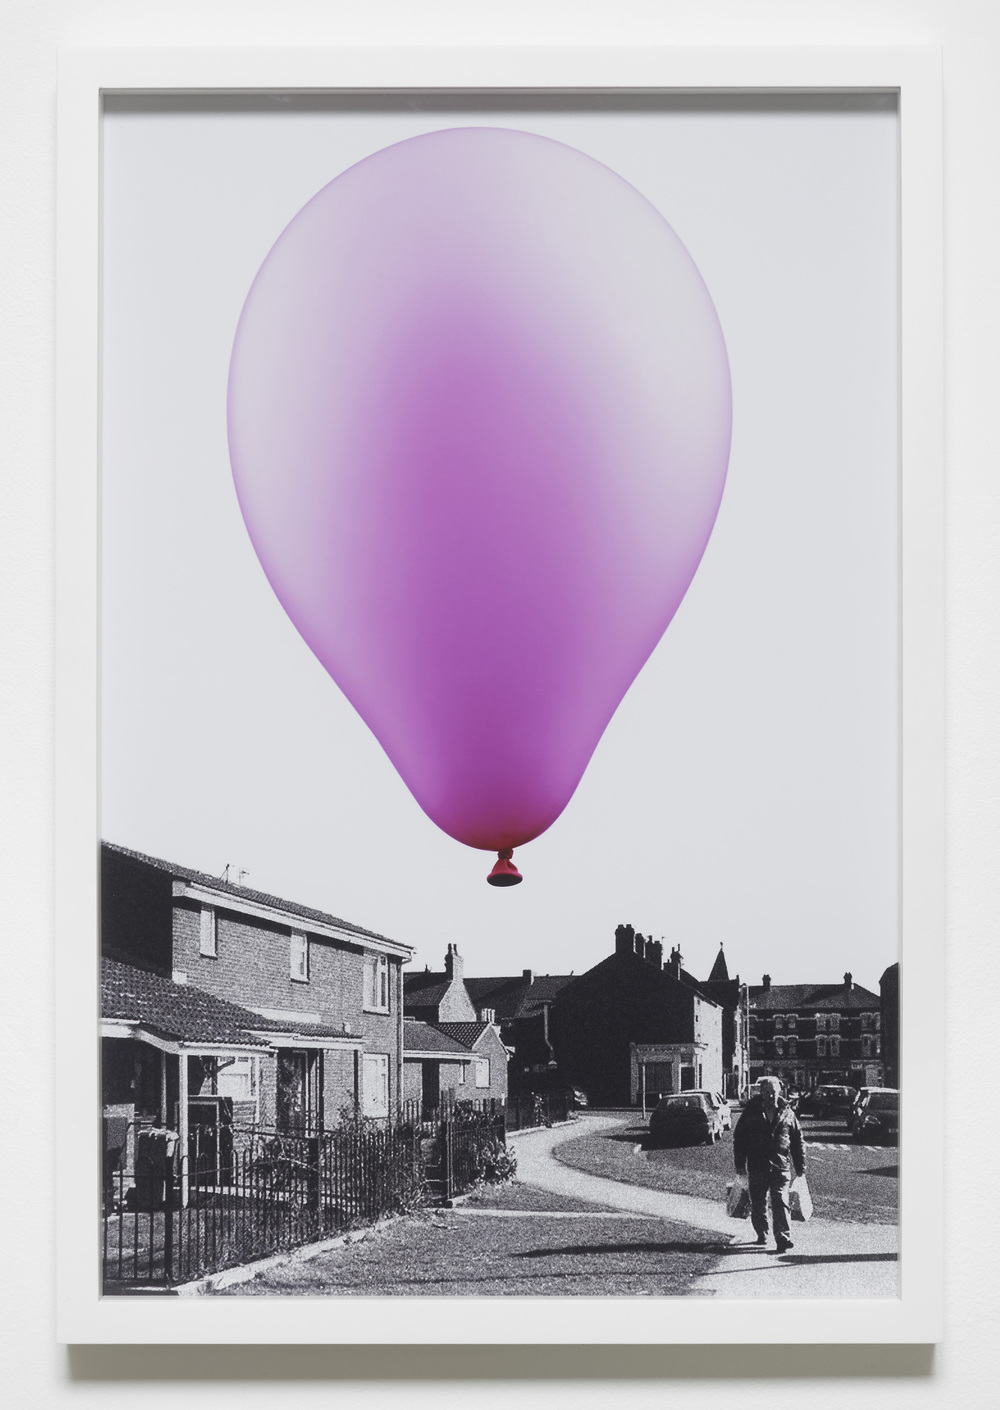 A Balloon for Britain   2012   Digital print   45 x 30 cm / 17.7 x 11.8 in